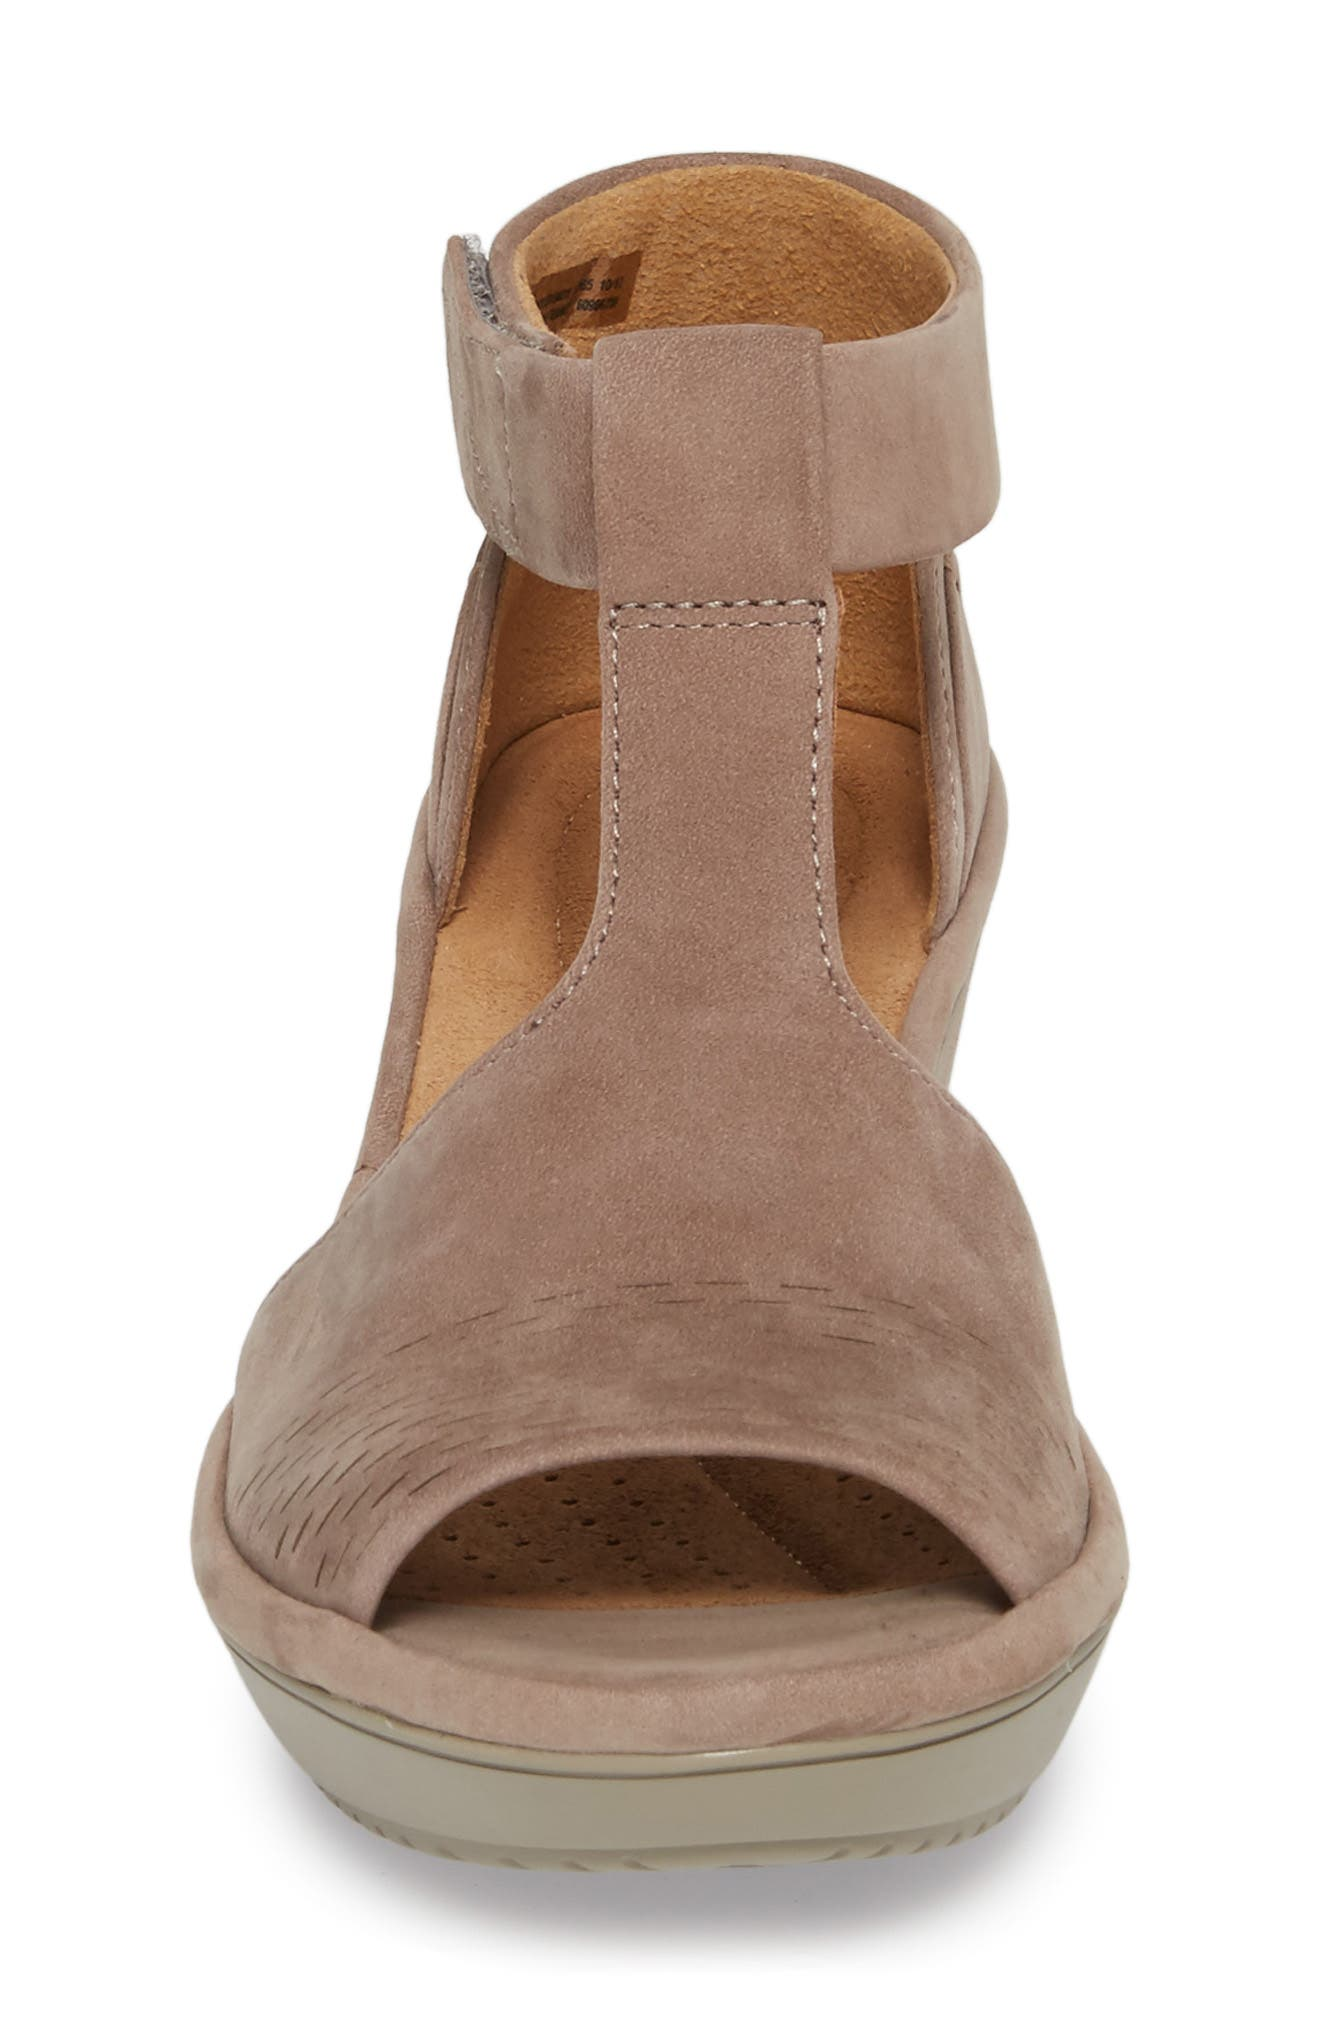 Wynnmere Avah T-Strap Wedge Sandal,                             Alternate thumbnail 4, color,                             Warm Grey Nubuck